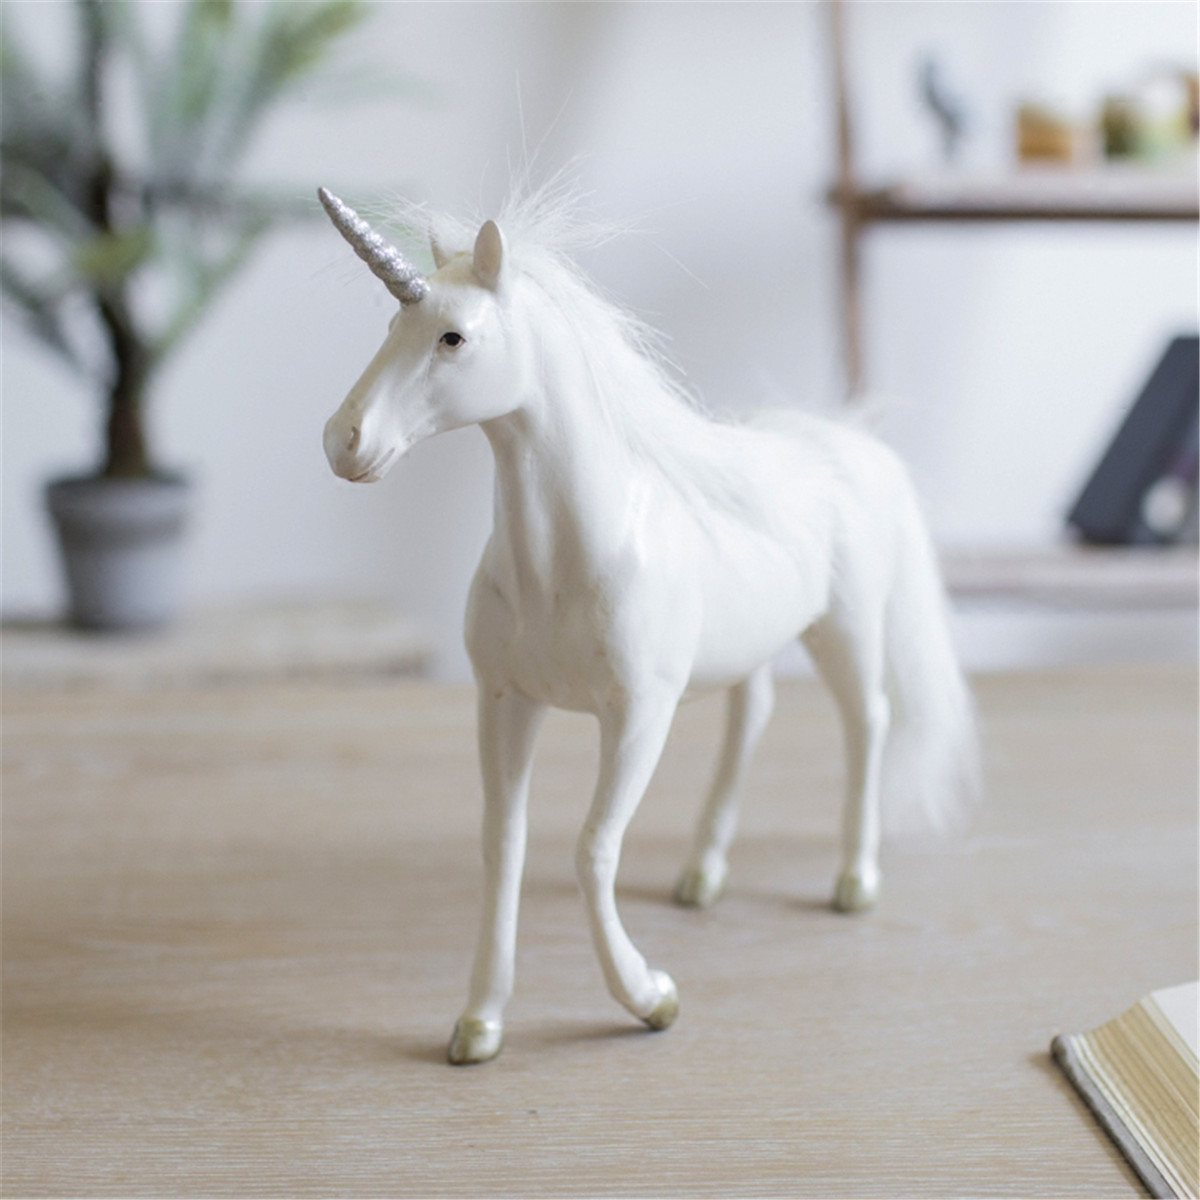 Fantasia Unicorn Figurine Fantasy Mythical Action Figure Novelty Gift Christmas Birthday Decor